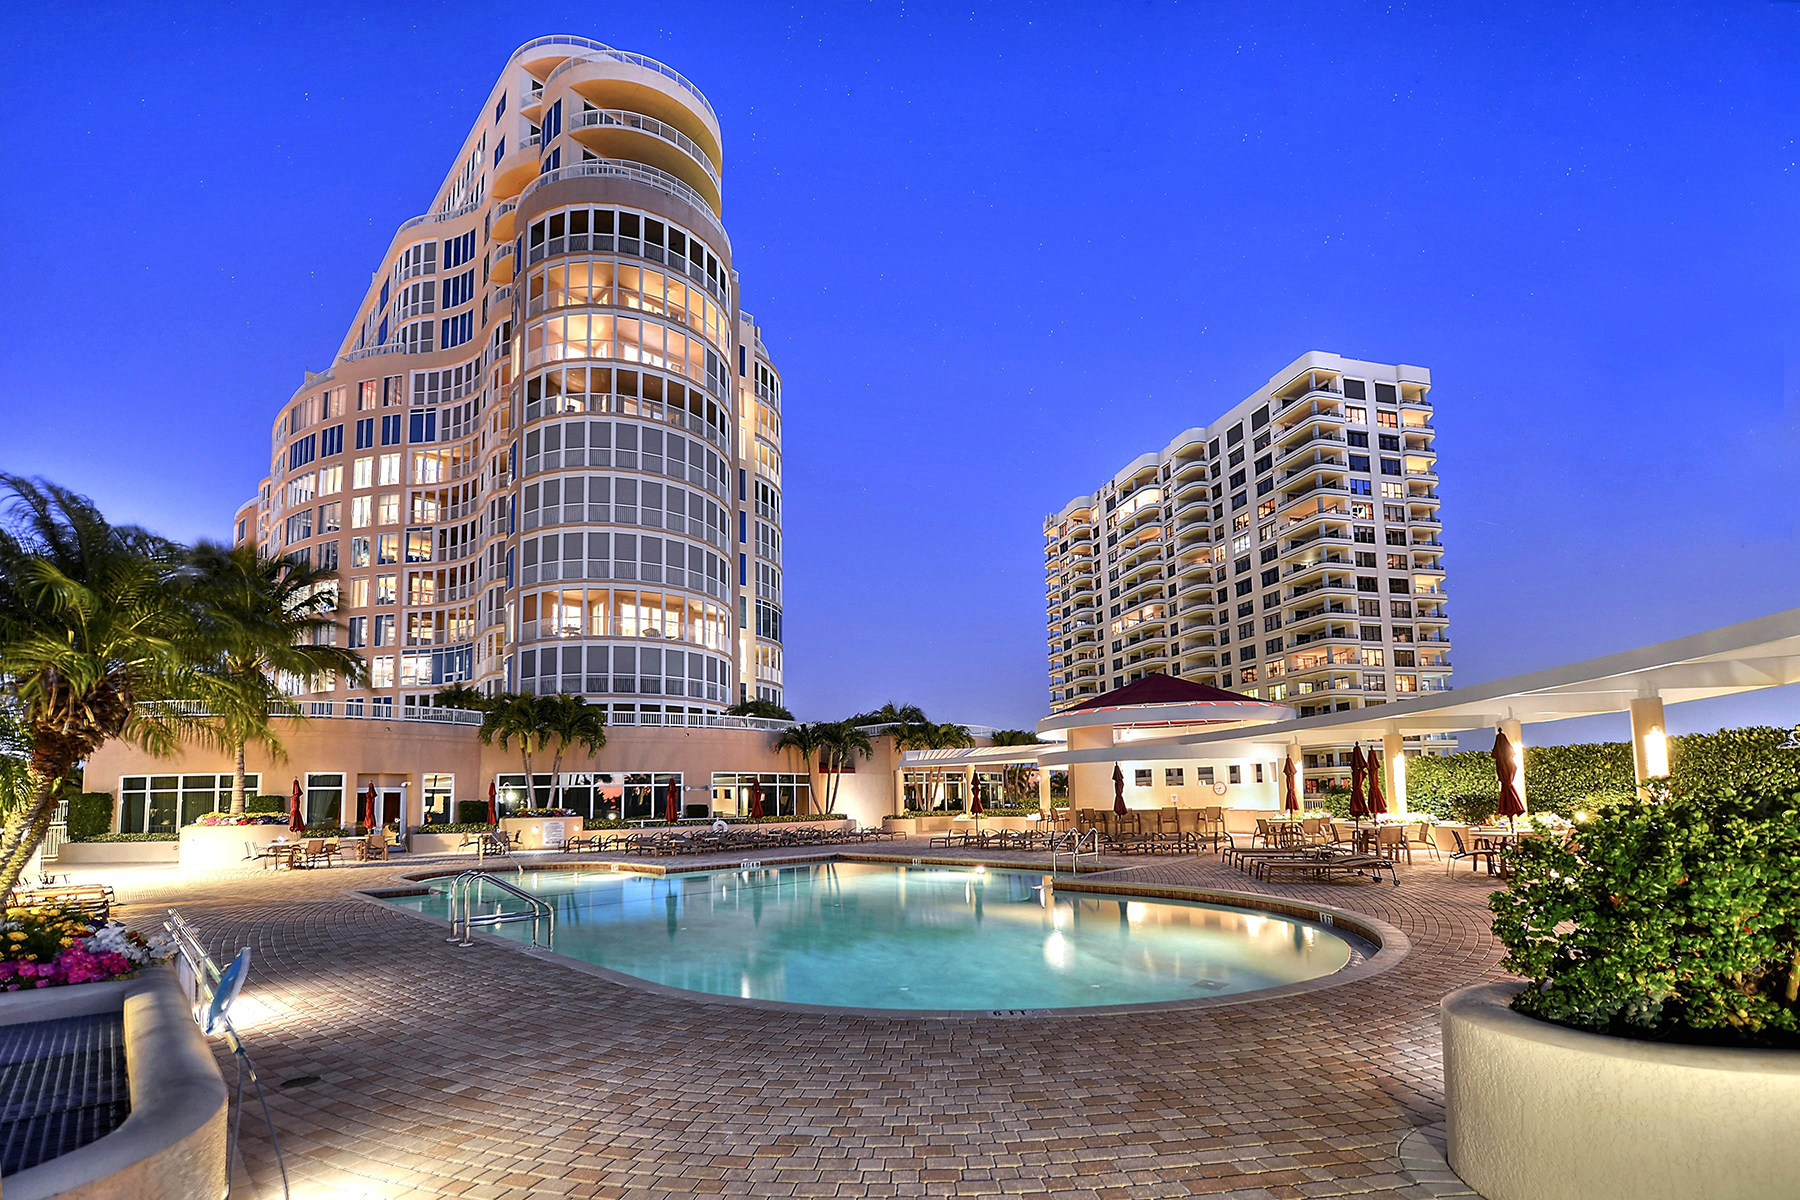 Condominium for Sale at PARK SHORE - ARIA 4501 Gulf Shore Blvd N 601 Naples, Florida 34103 United States